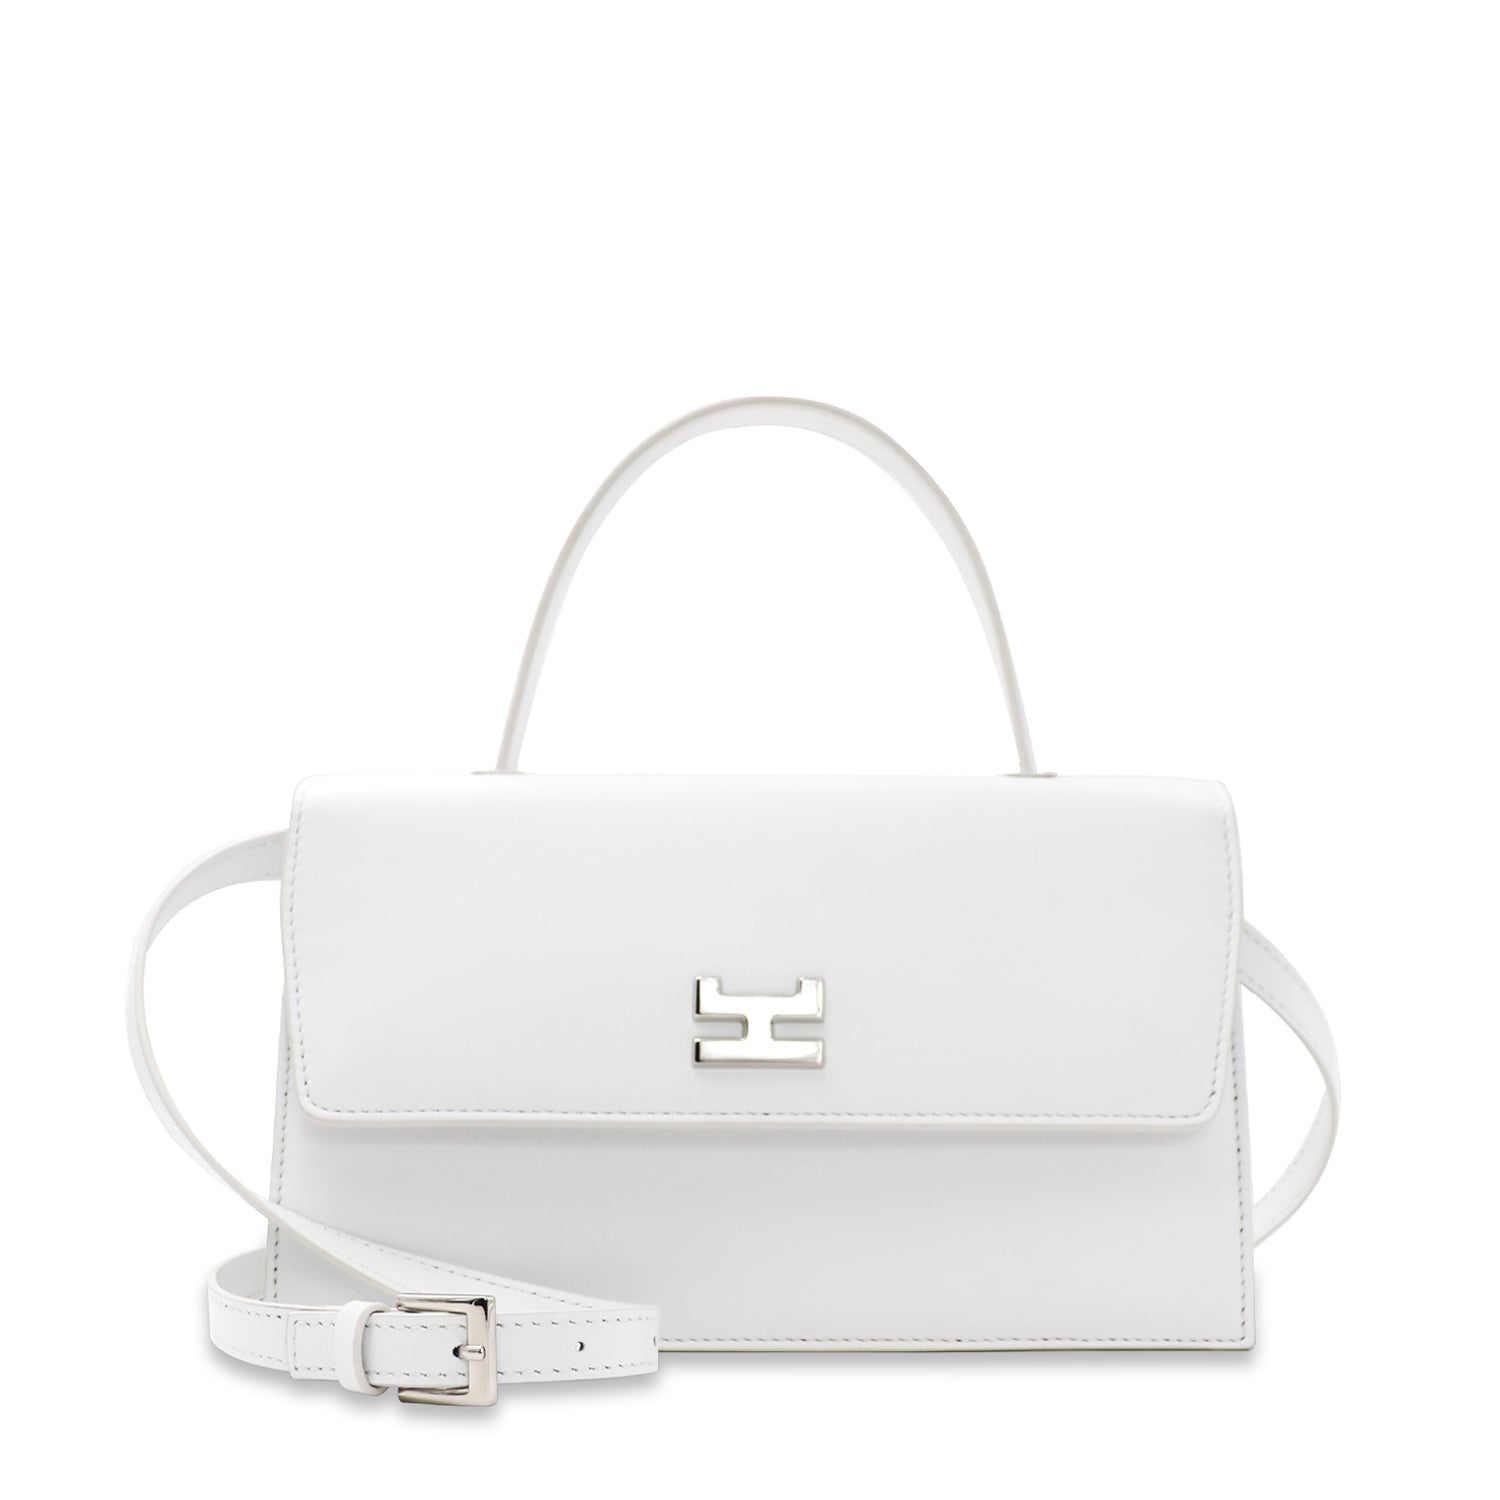 NINEL WHITE CALFSKIN LEATHER SHOULDER BAG